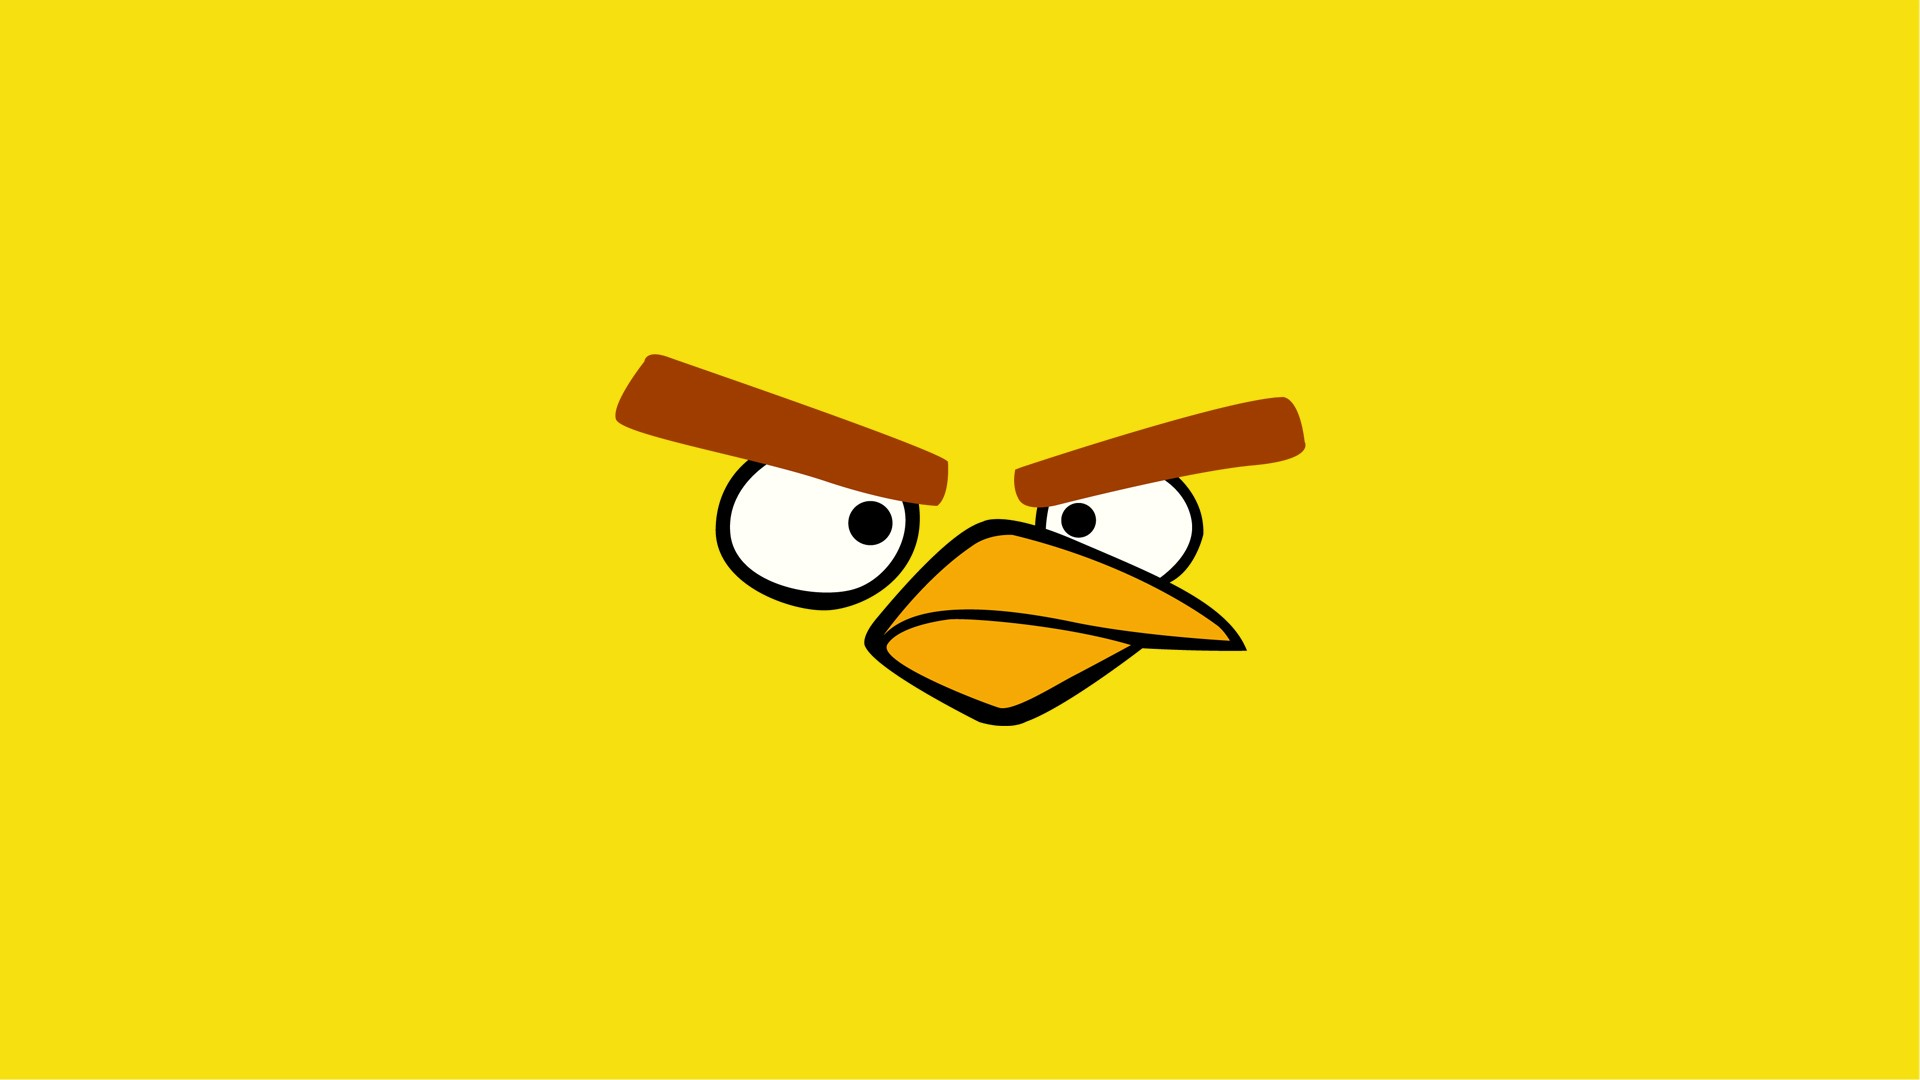 48+] Angry Birds Movie Wallpaper on WallpaperSafari